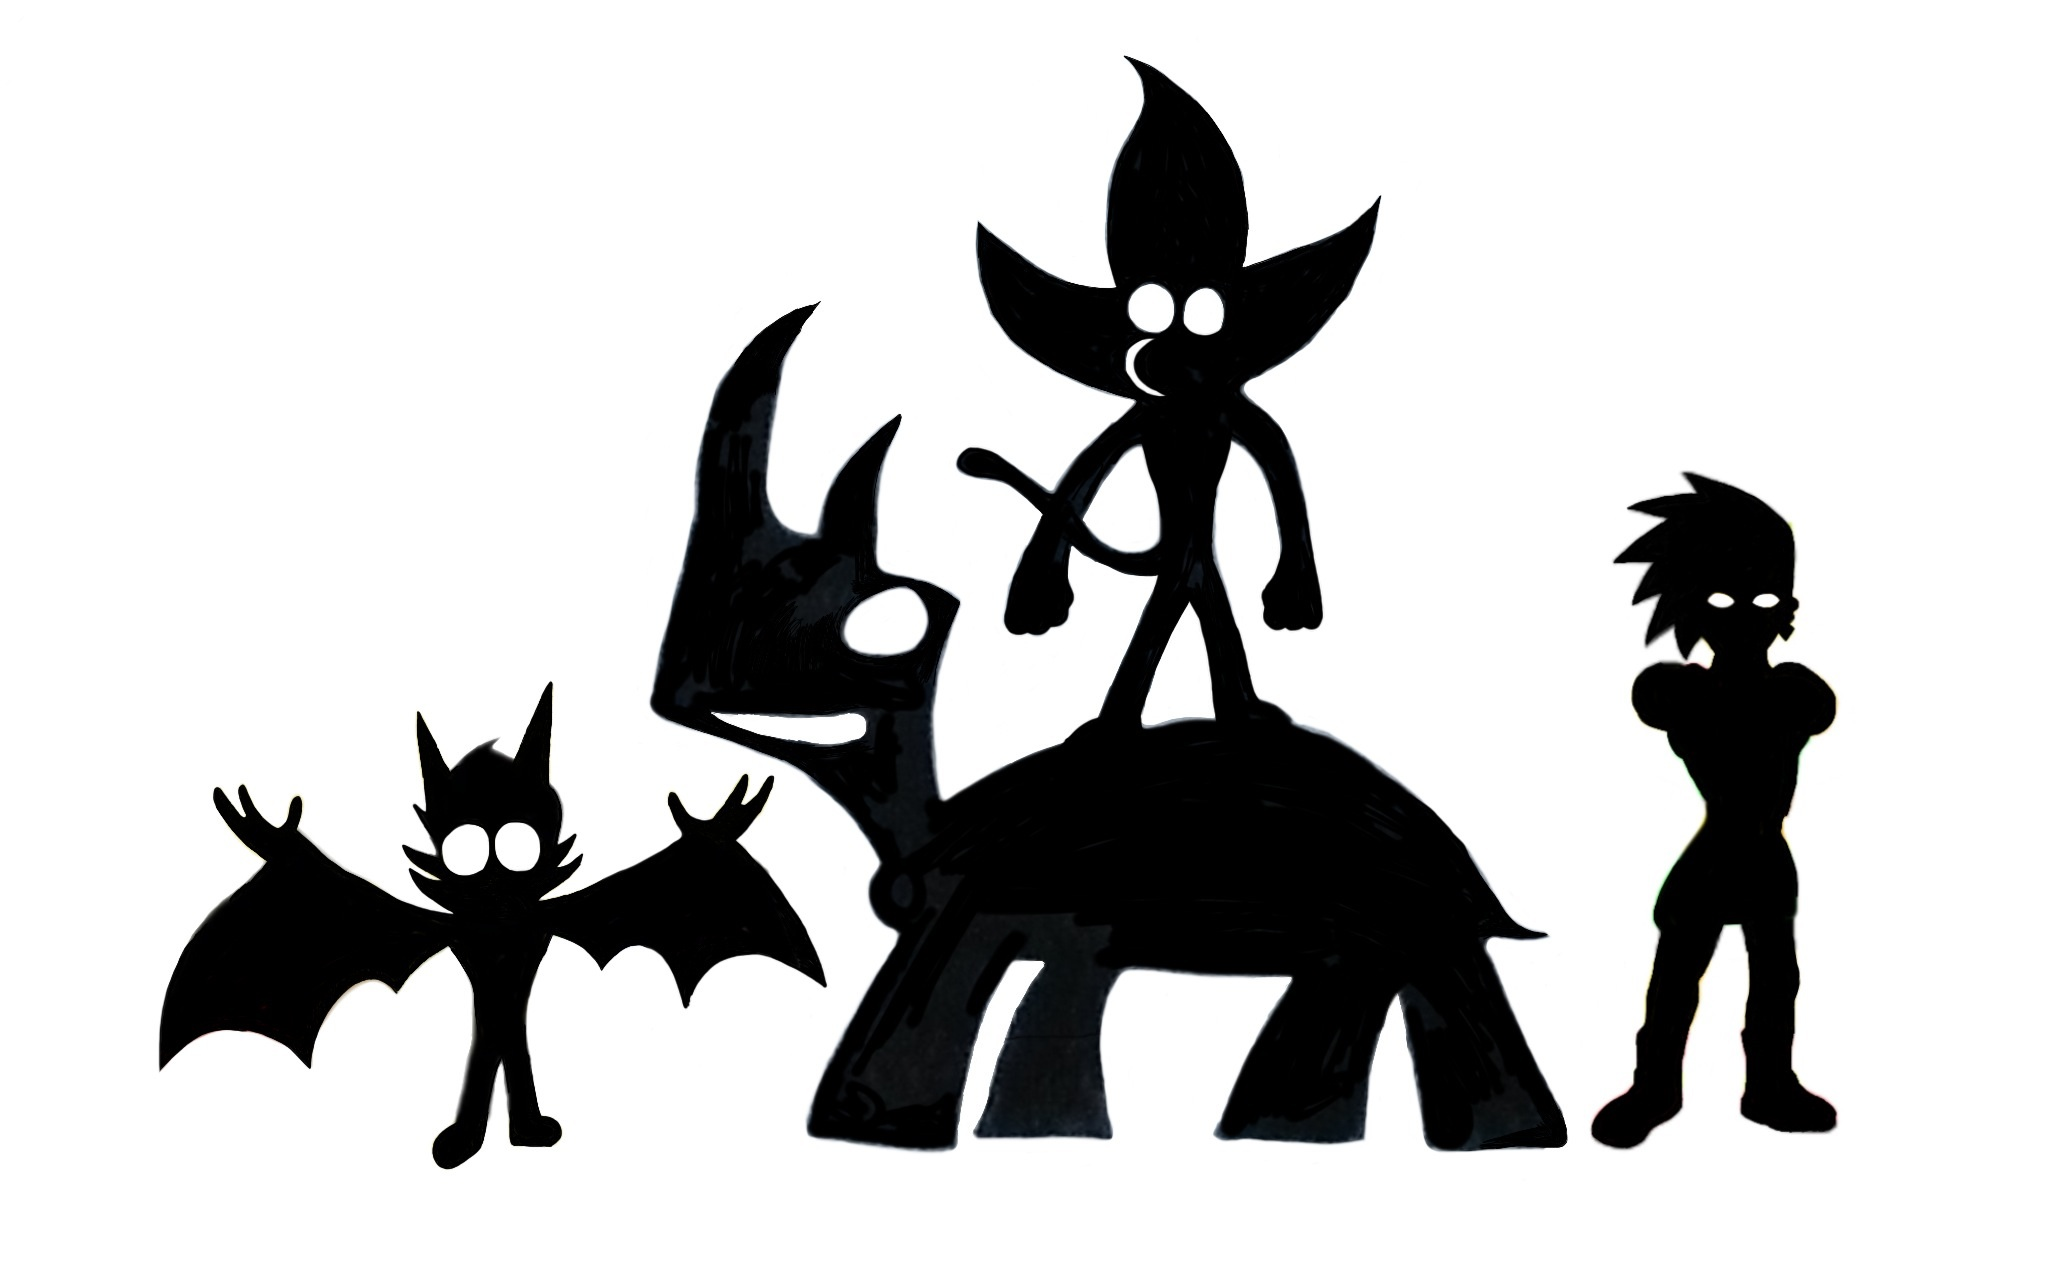 Toro and Tryce characters